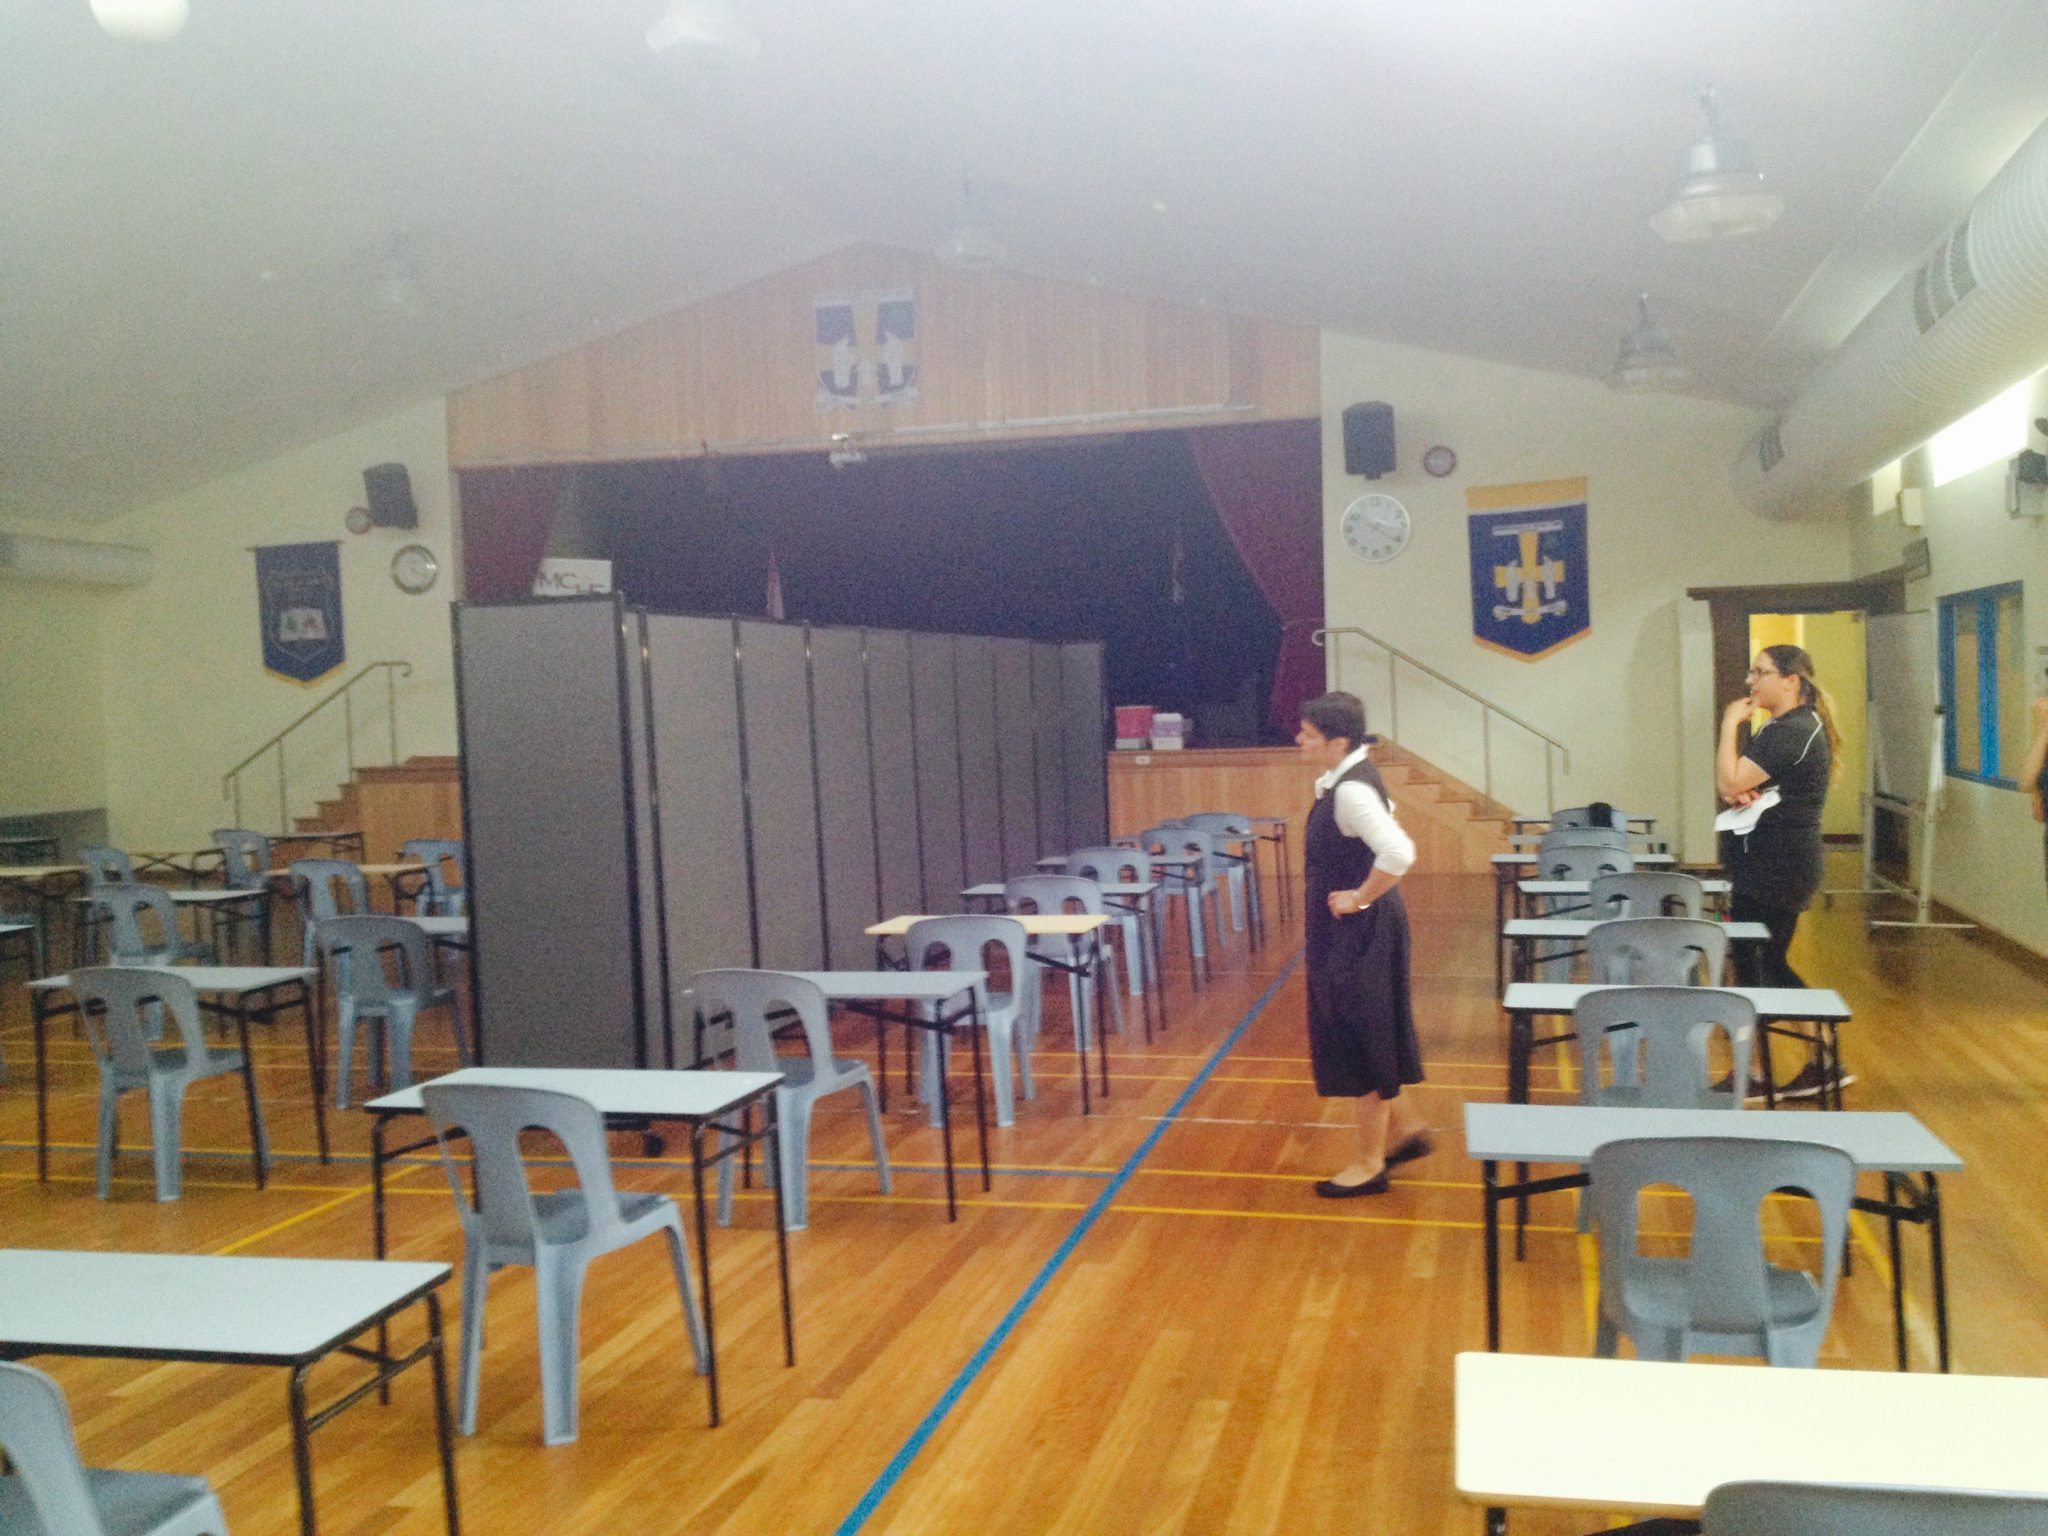 mobile room divider in classroom area- portable partition